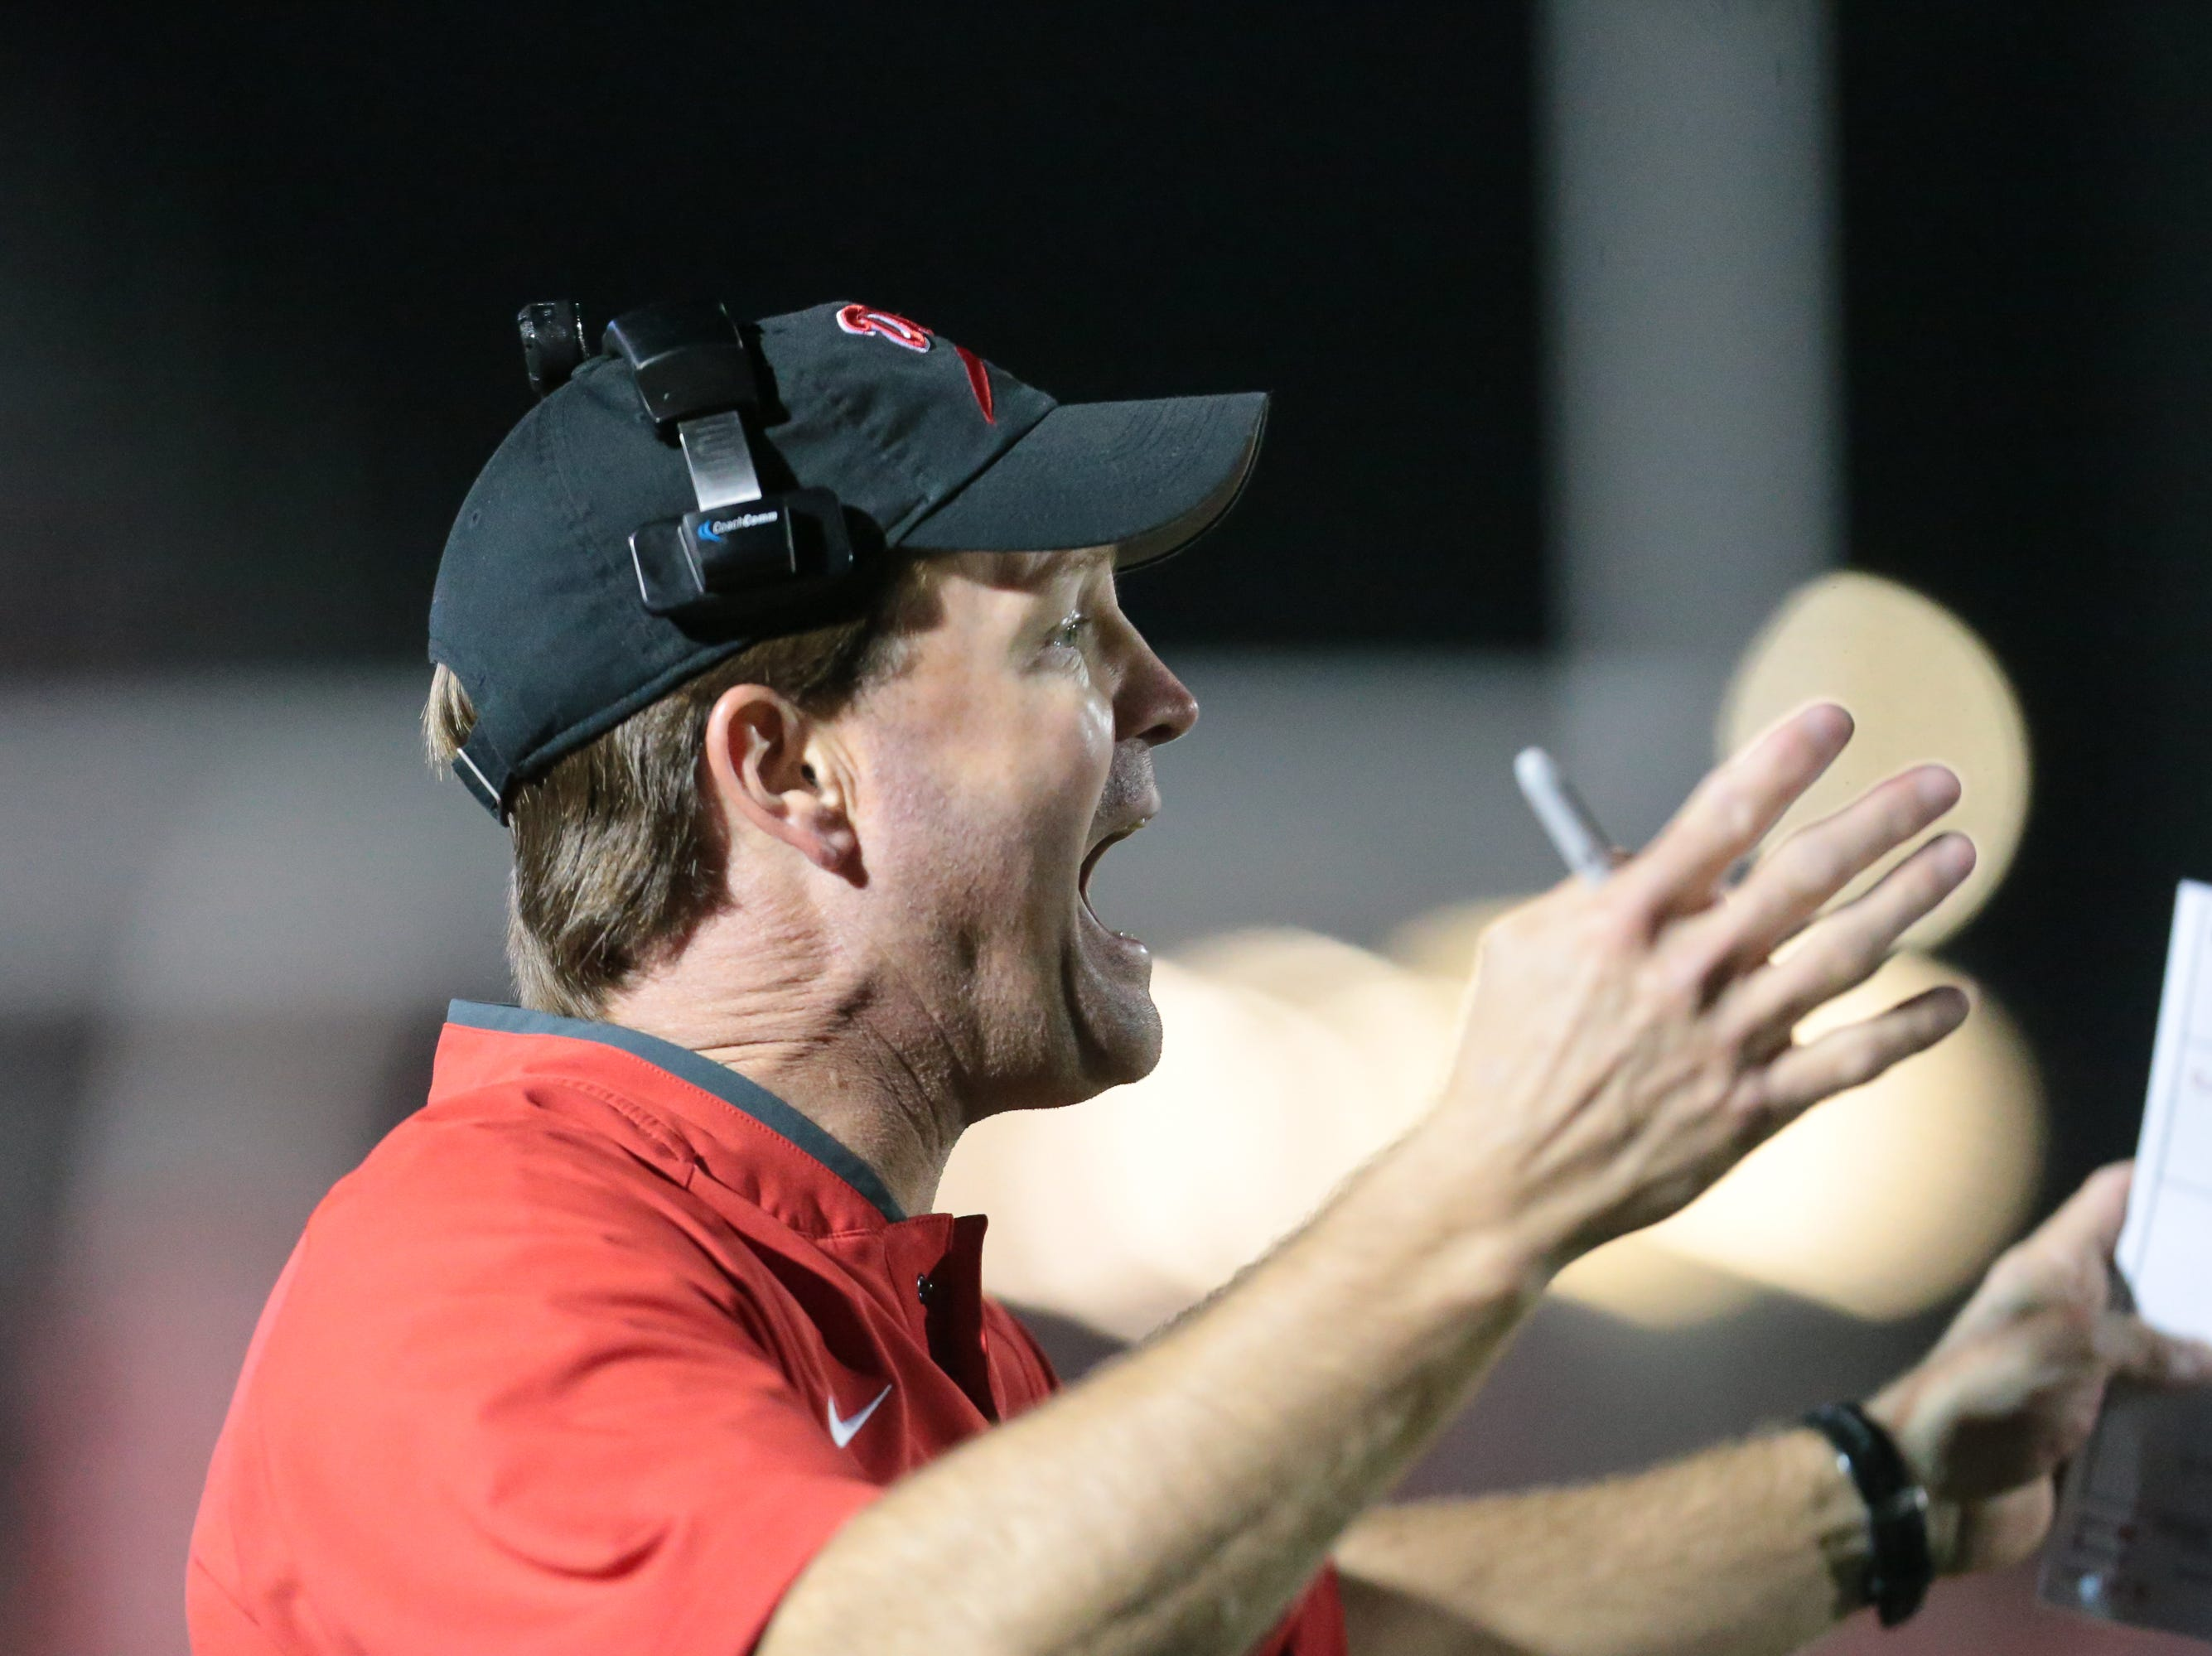 Brandon High School head football coach Tyler Peterson yells instructions to his team in the second half. Pearl played Brandon High School in an MHSAA Class 6A playoff game on Friday, November 16, 2018 at Brandon. Photo by Keith Warren